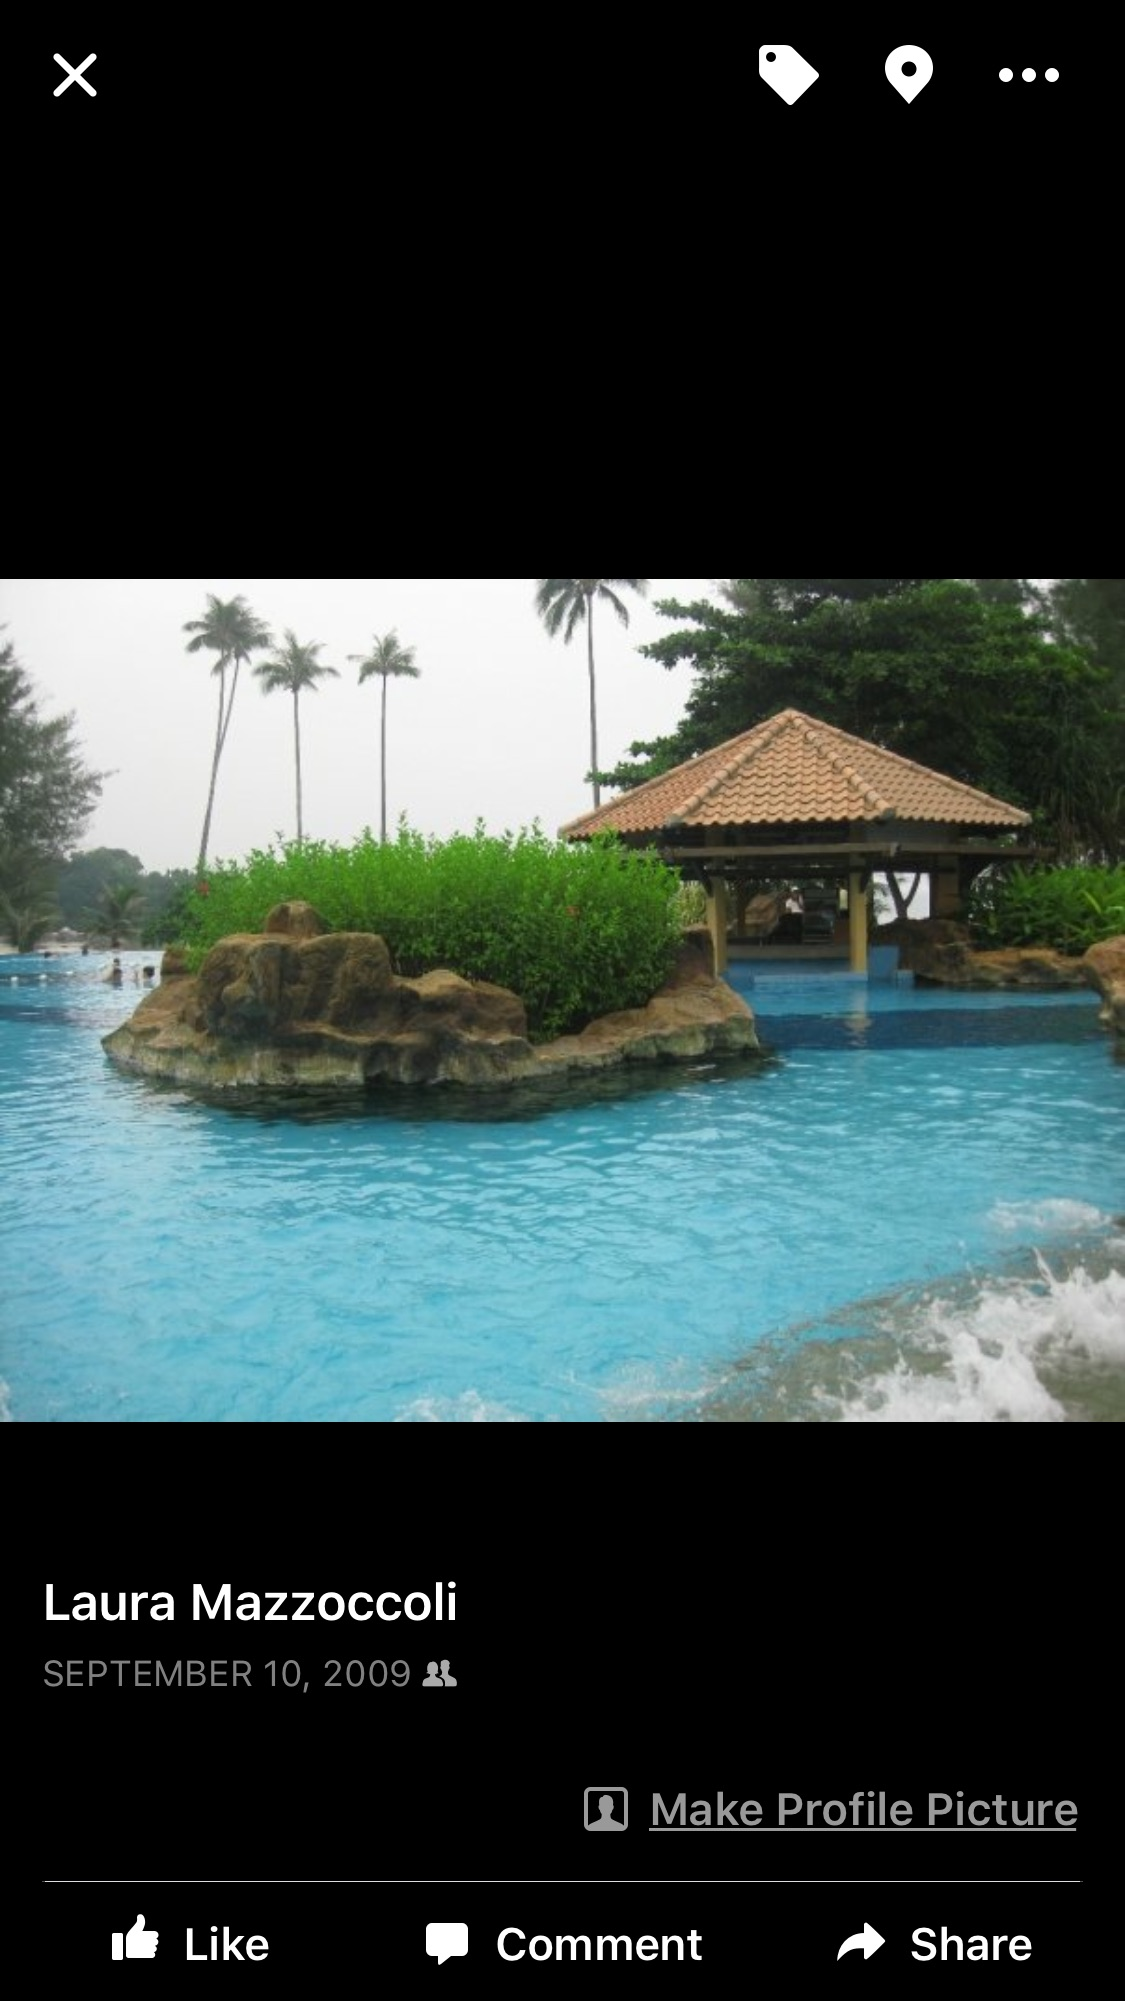 Pool in Indonesia